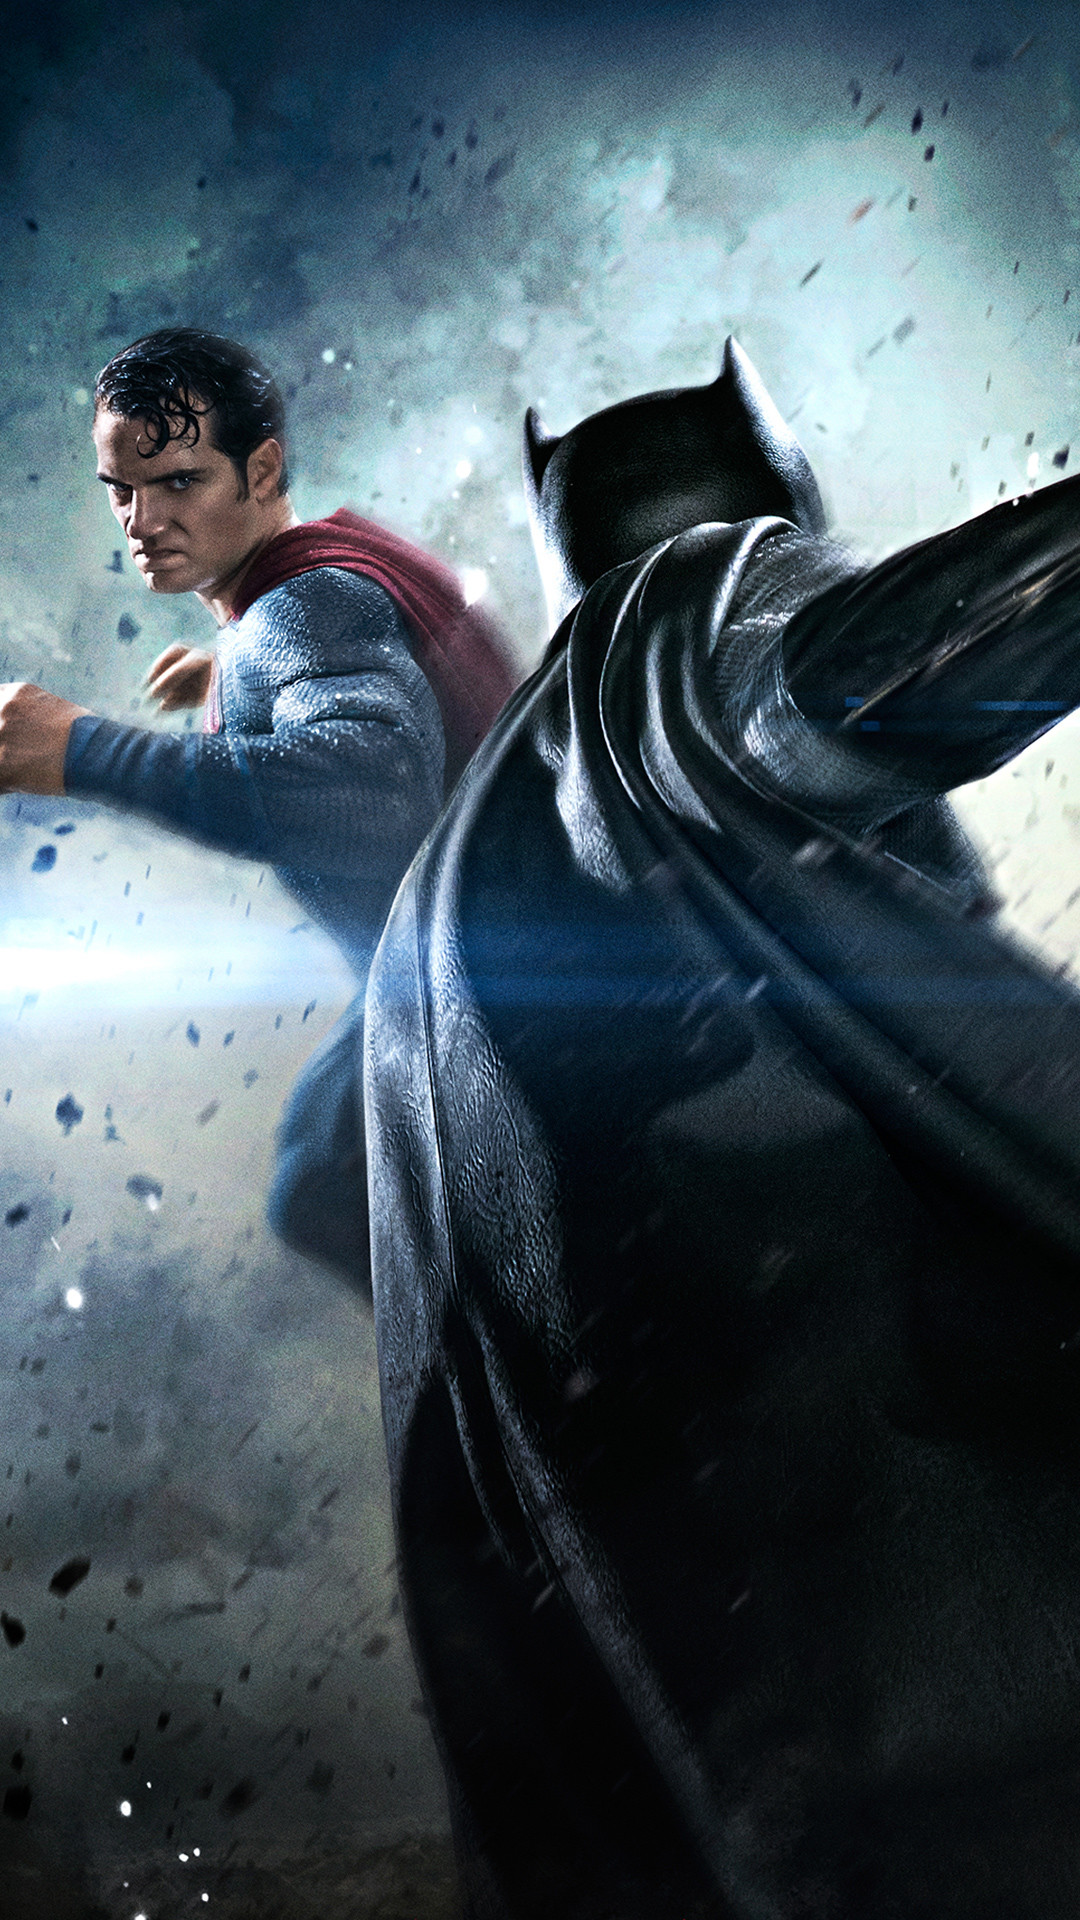 1080x1920 Batman vs Superman Movie Fight iPhone 6 Plus HD Wallpaper iPod .